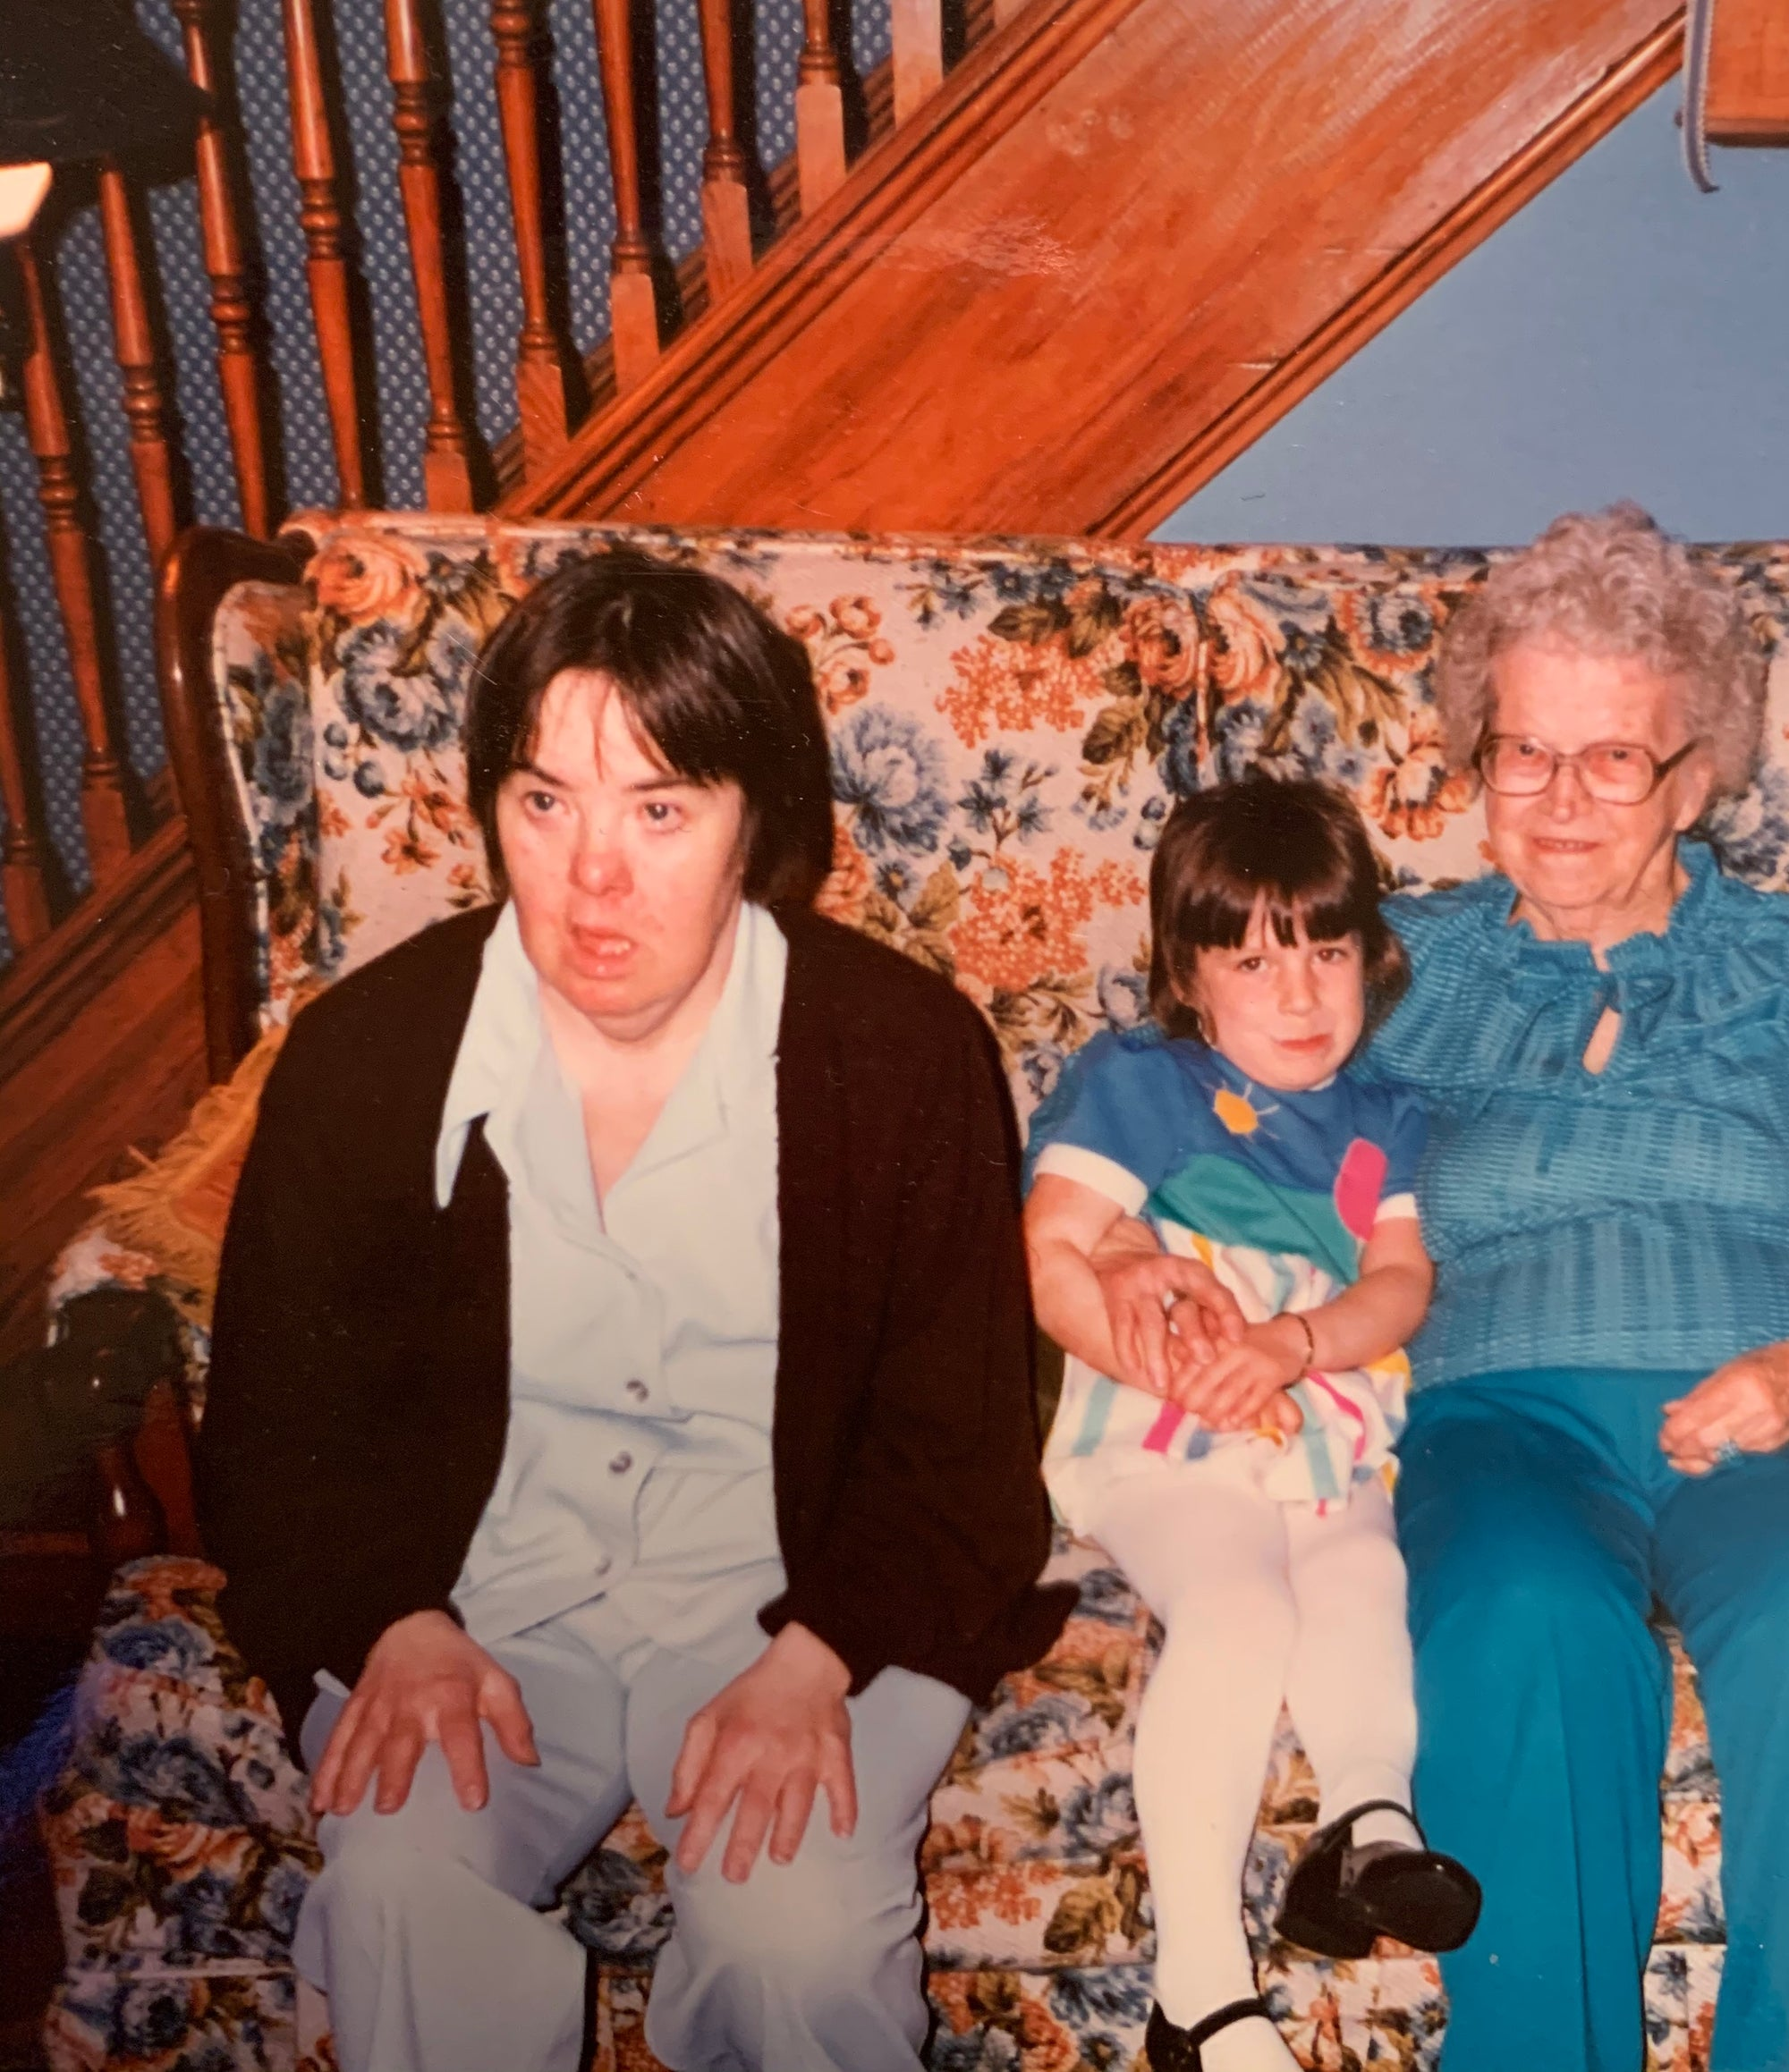 Me with my Aunt Sarah Jane (Down Syndrome) and my Great Grandmother Mimi Hannah